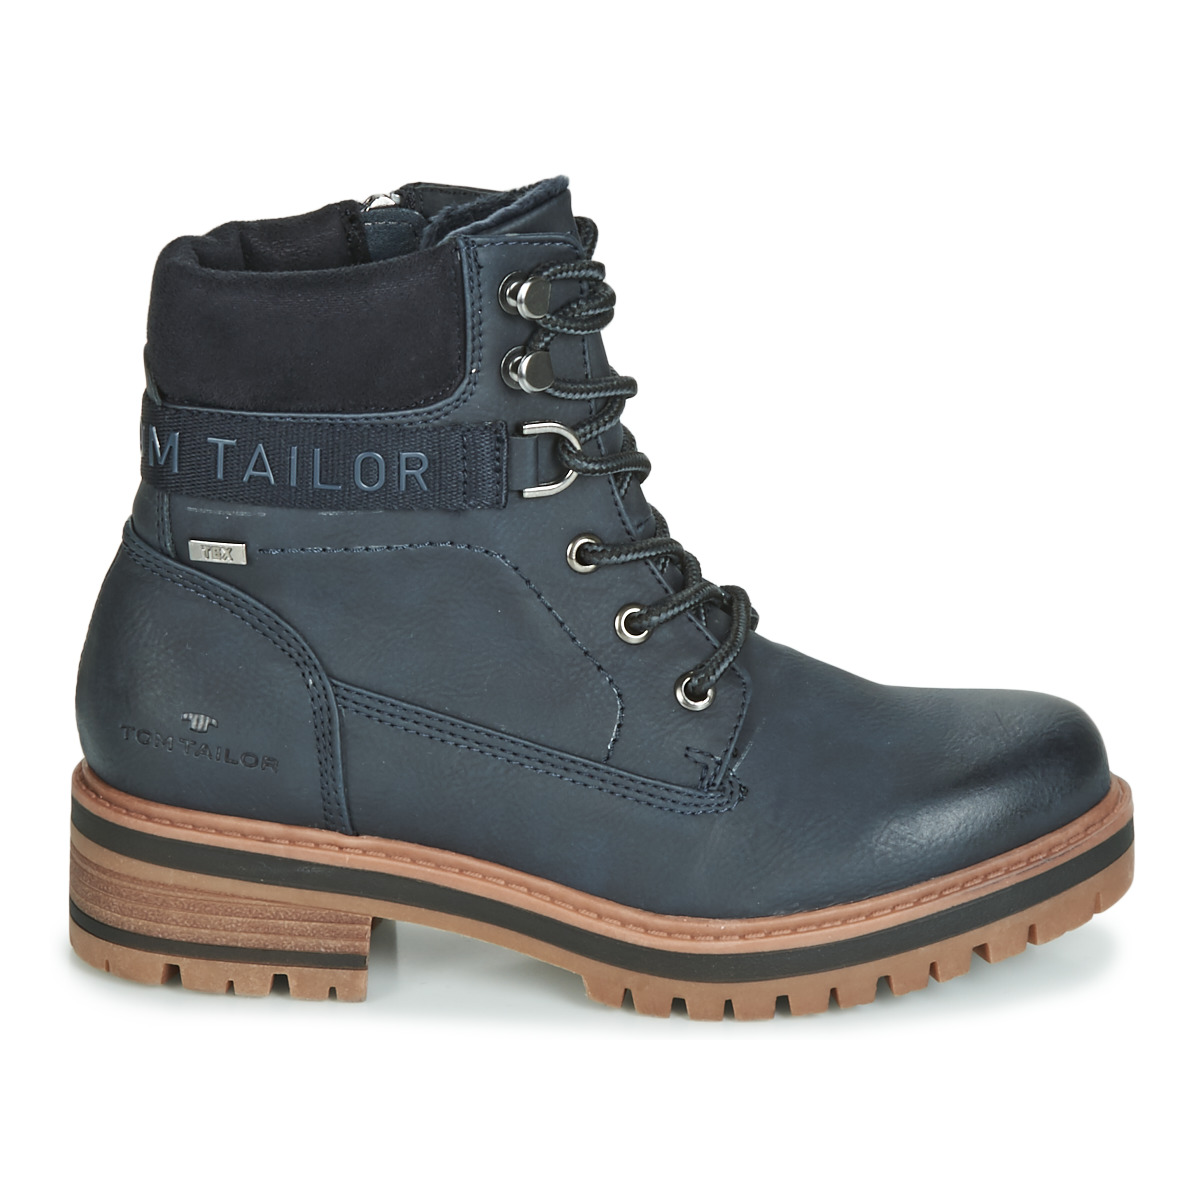 Tailor Paprivo Paprivo Tom Boots Tailor Boots Tom Boots Tom Paprivo Tailor Aj435RLq